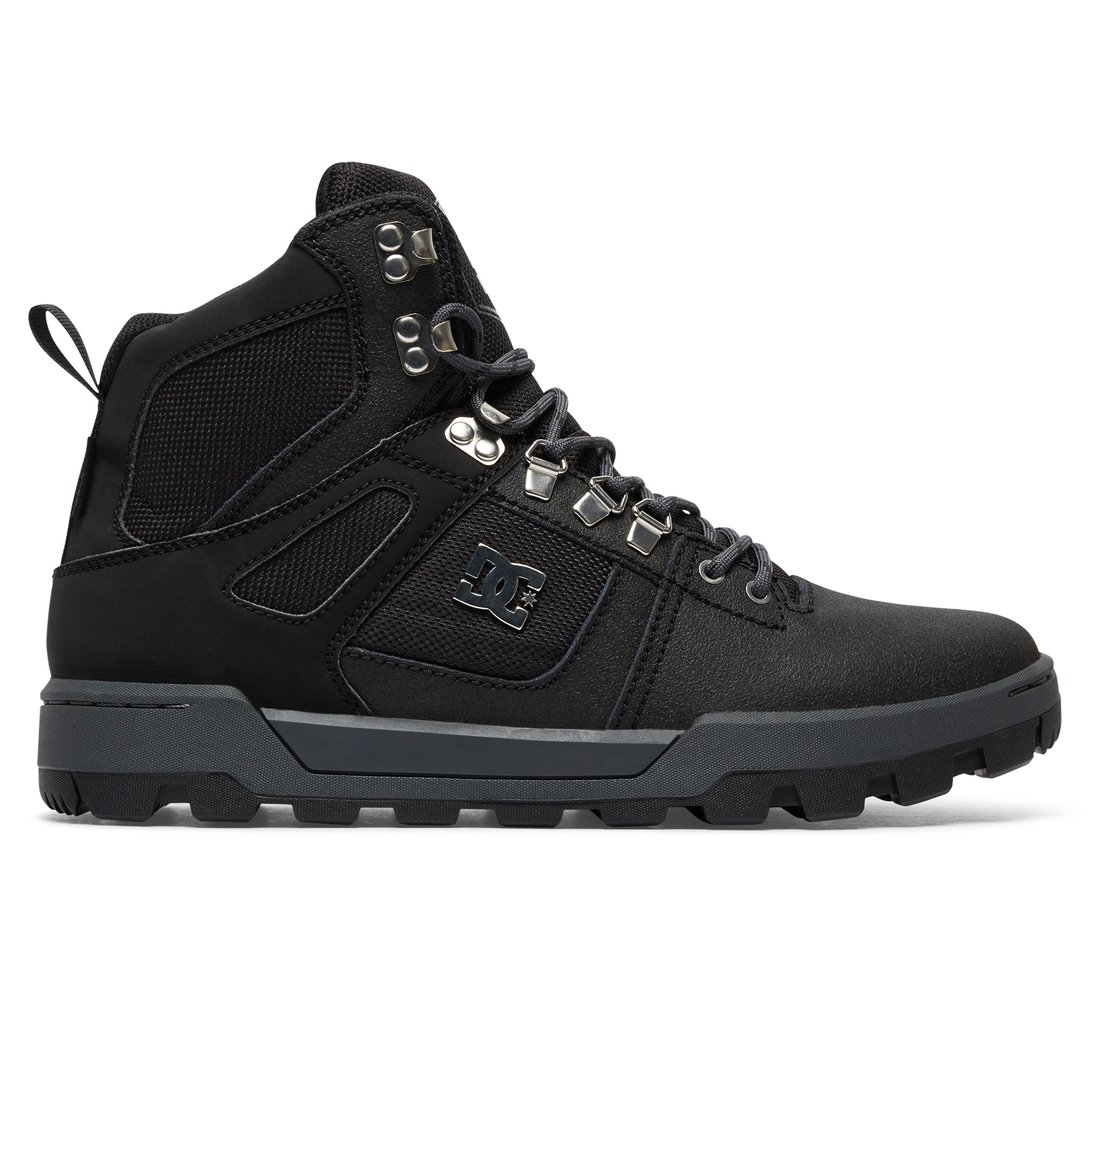 Mens Spartan High Wr Classic Boots DC